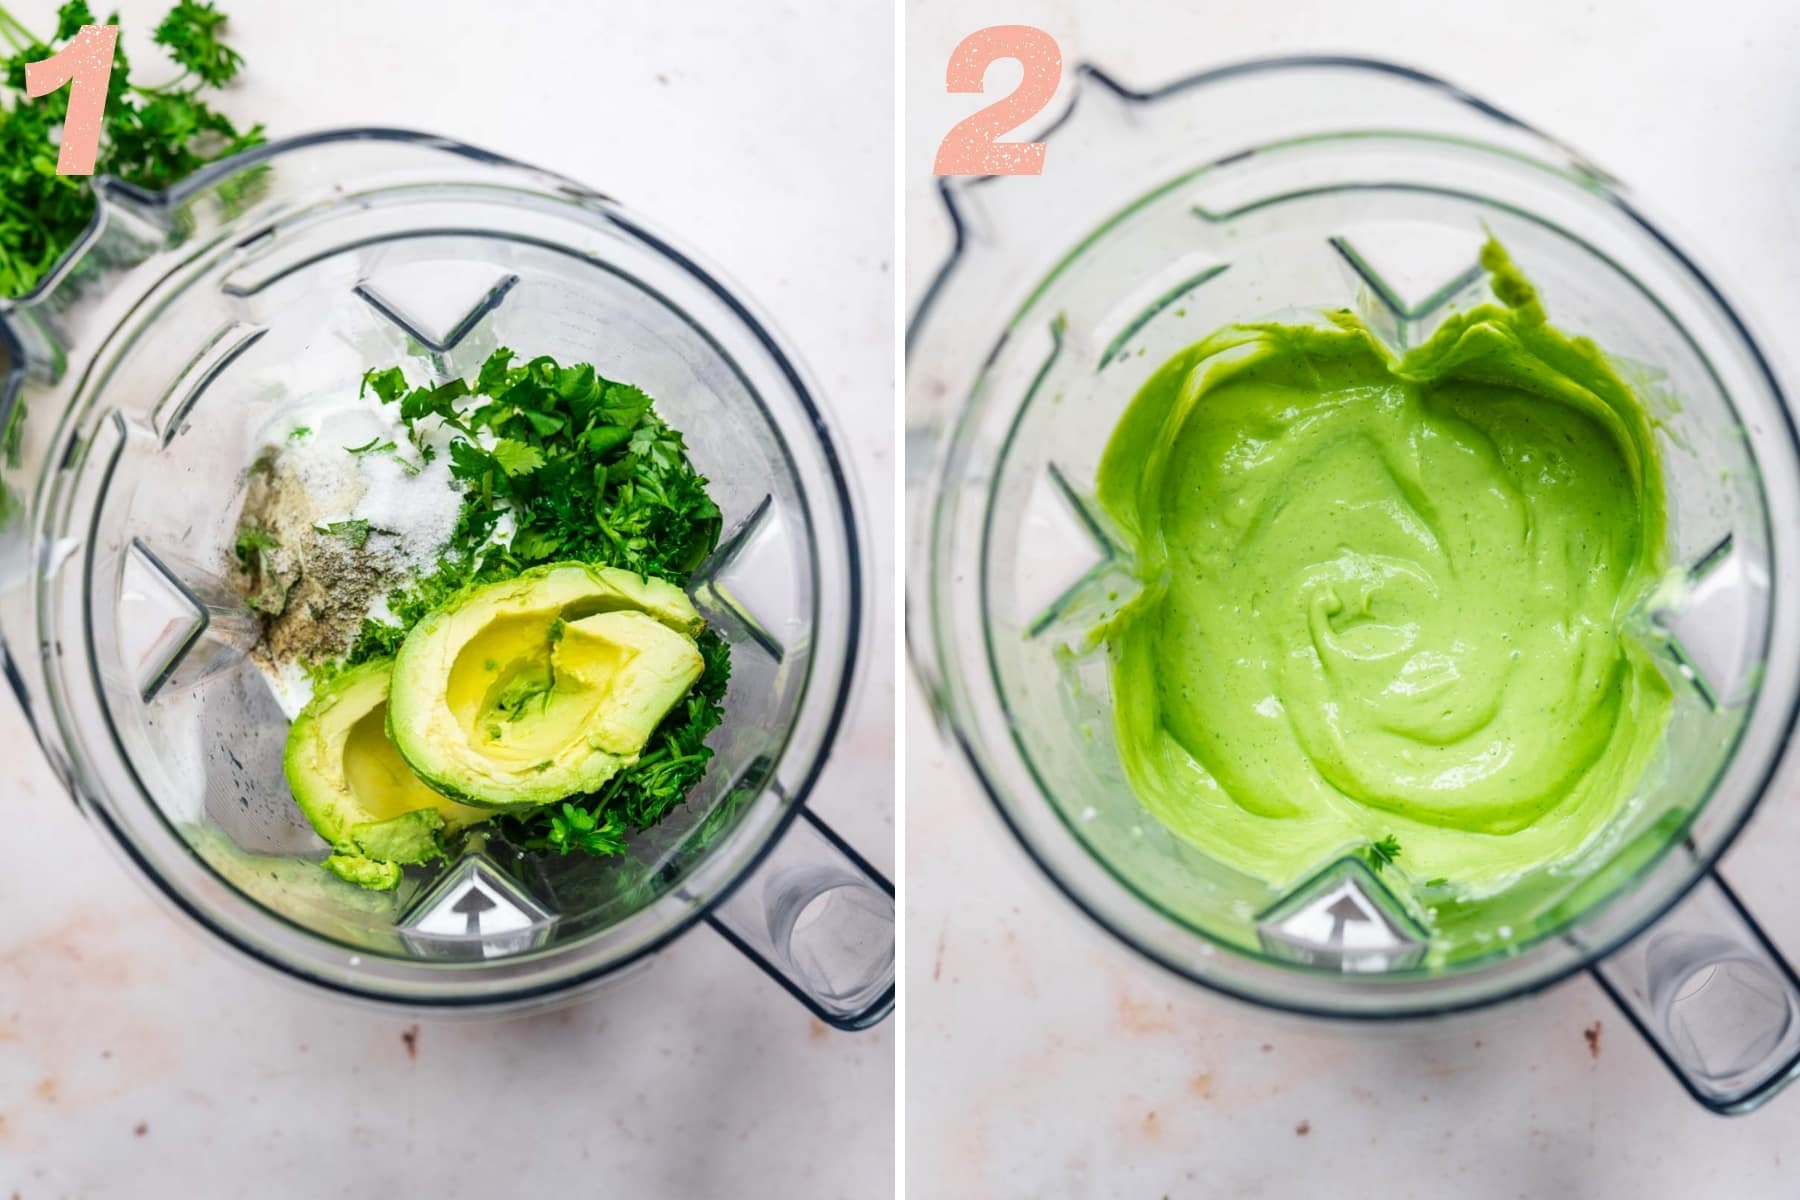 before and after blending herby tofu dip in blender.